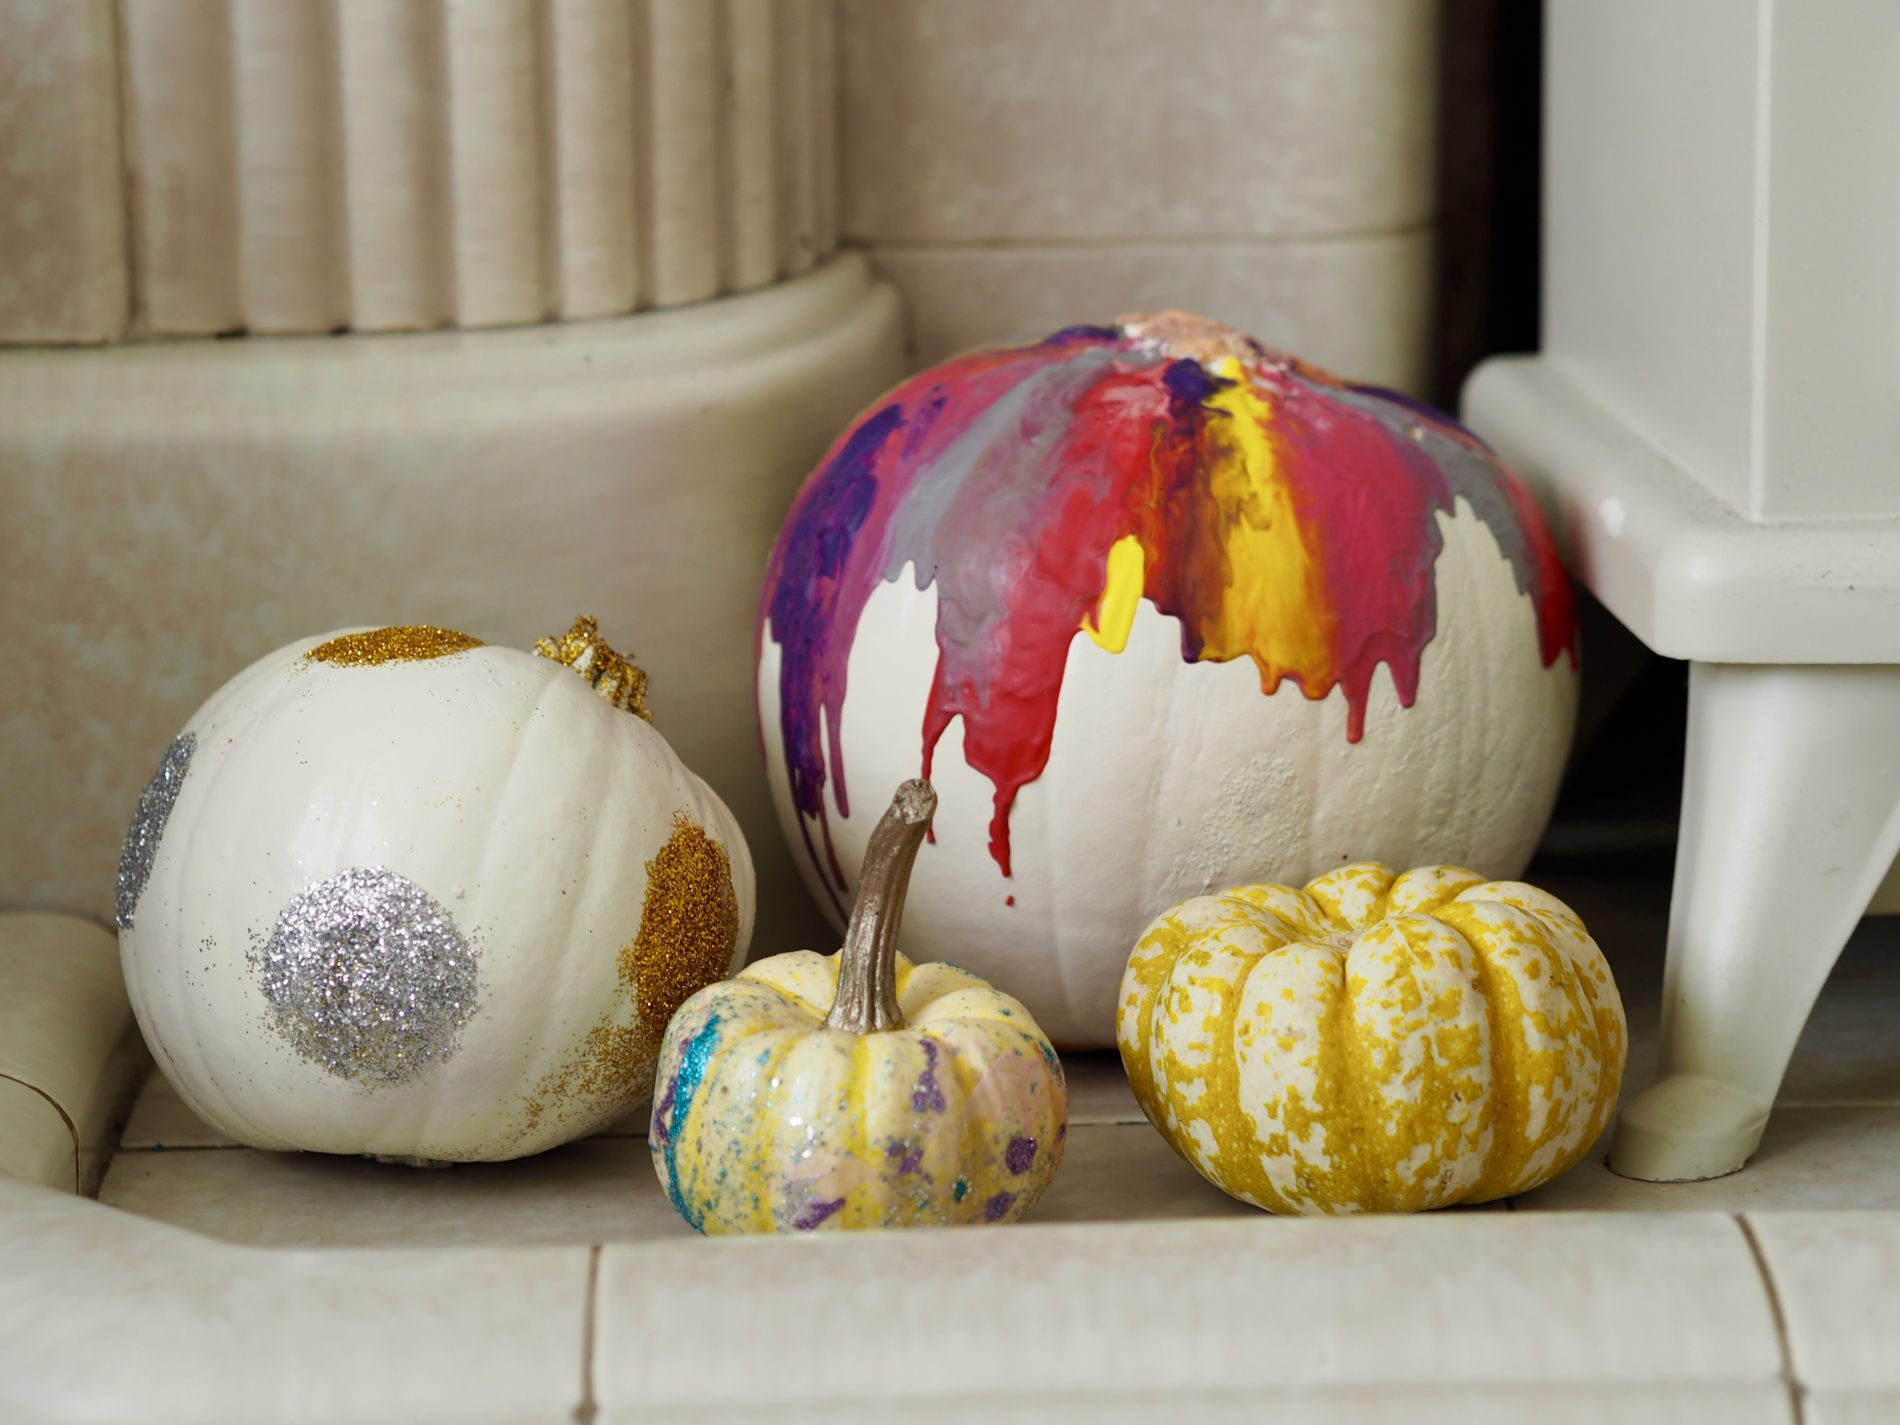 Easy no carve pumpkin decorating ideas